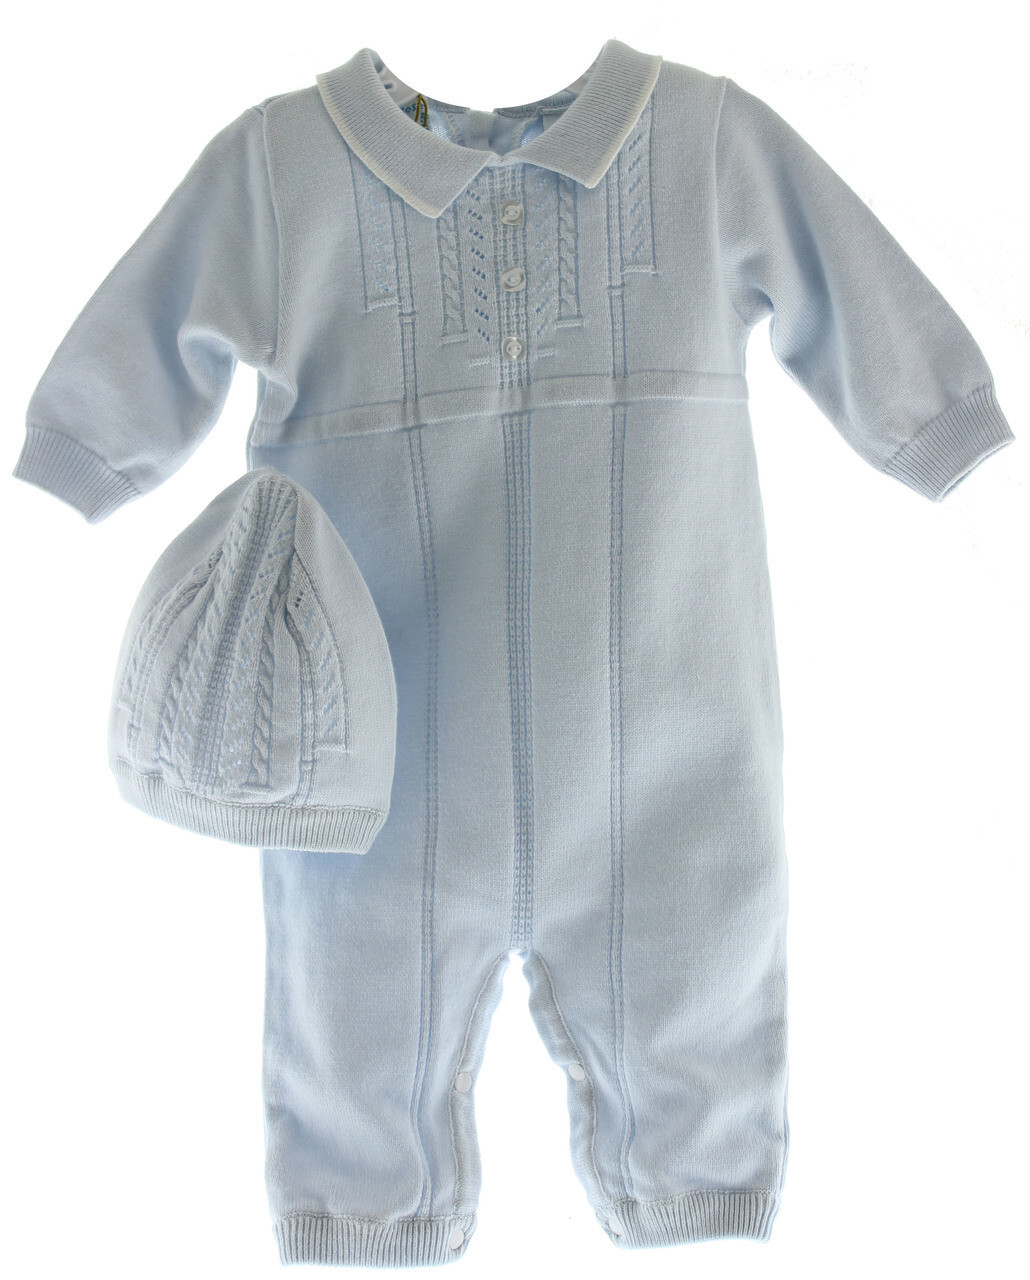 Boys White Dressy Romper Outfit Blue Smocking Feltman Brothers